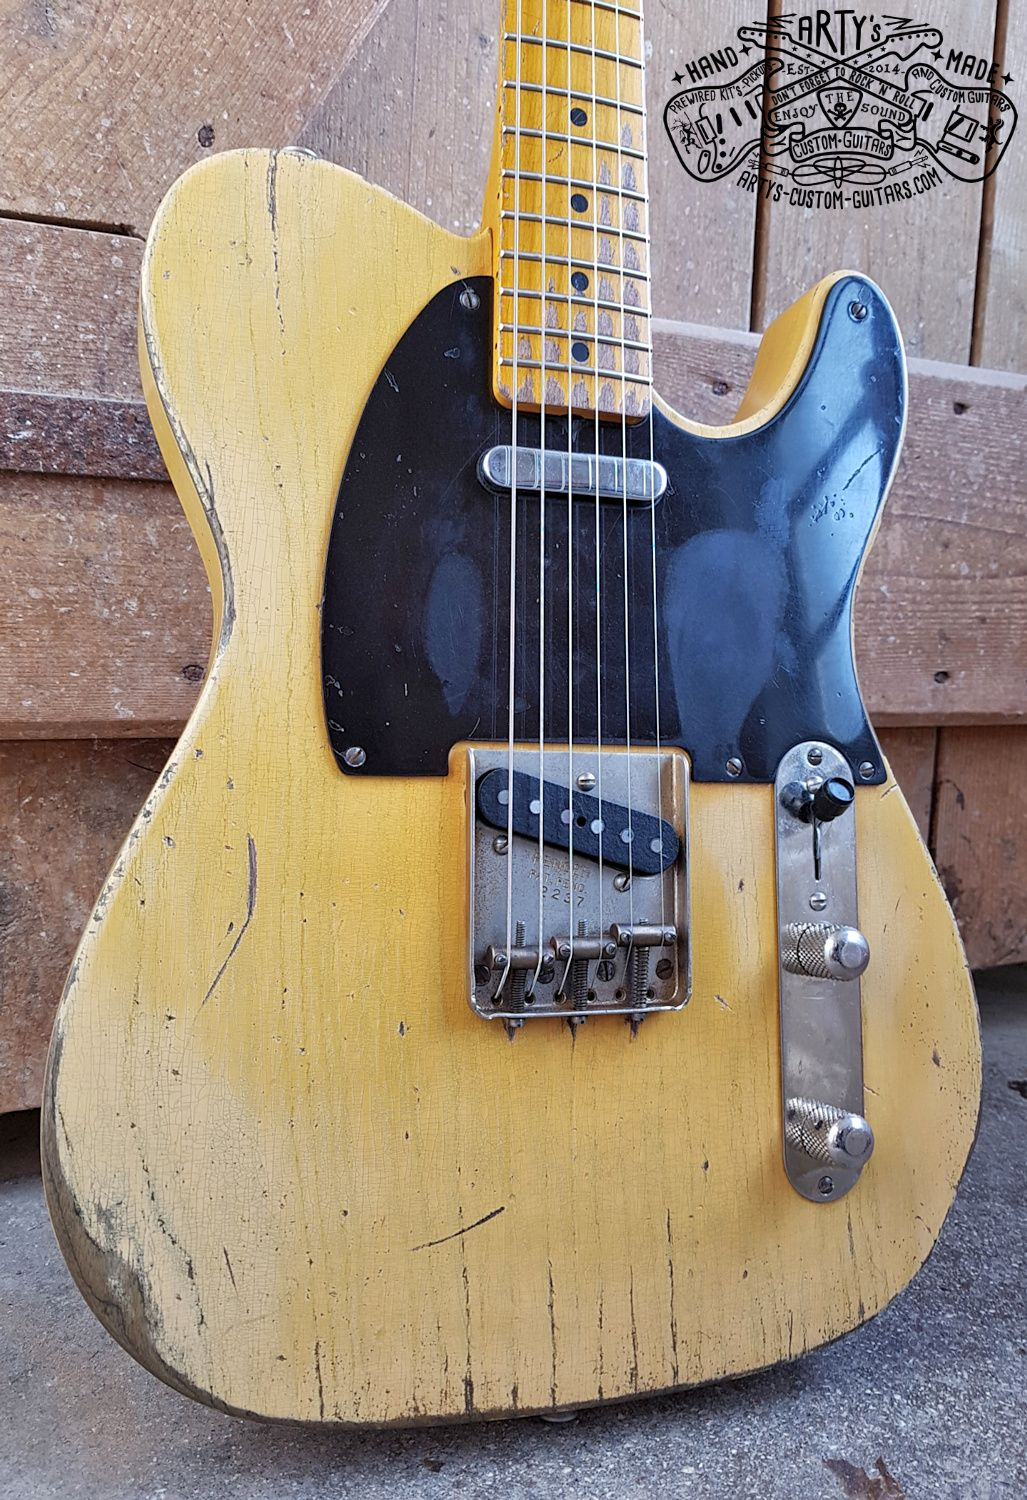 medium resolution of 50 s telecaster broadcaster heavy relic tele butterscotch blond maple neck bakelite pickguard fender swamp ash body aged nitro finish arty s custom guitars